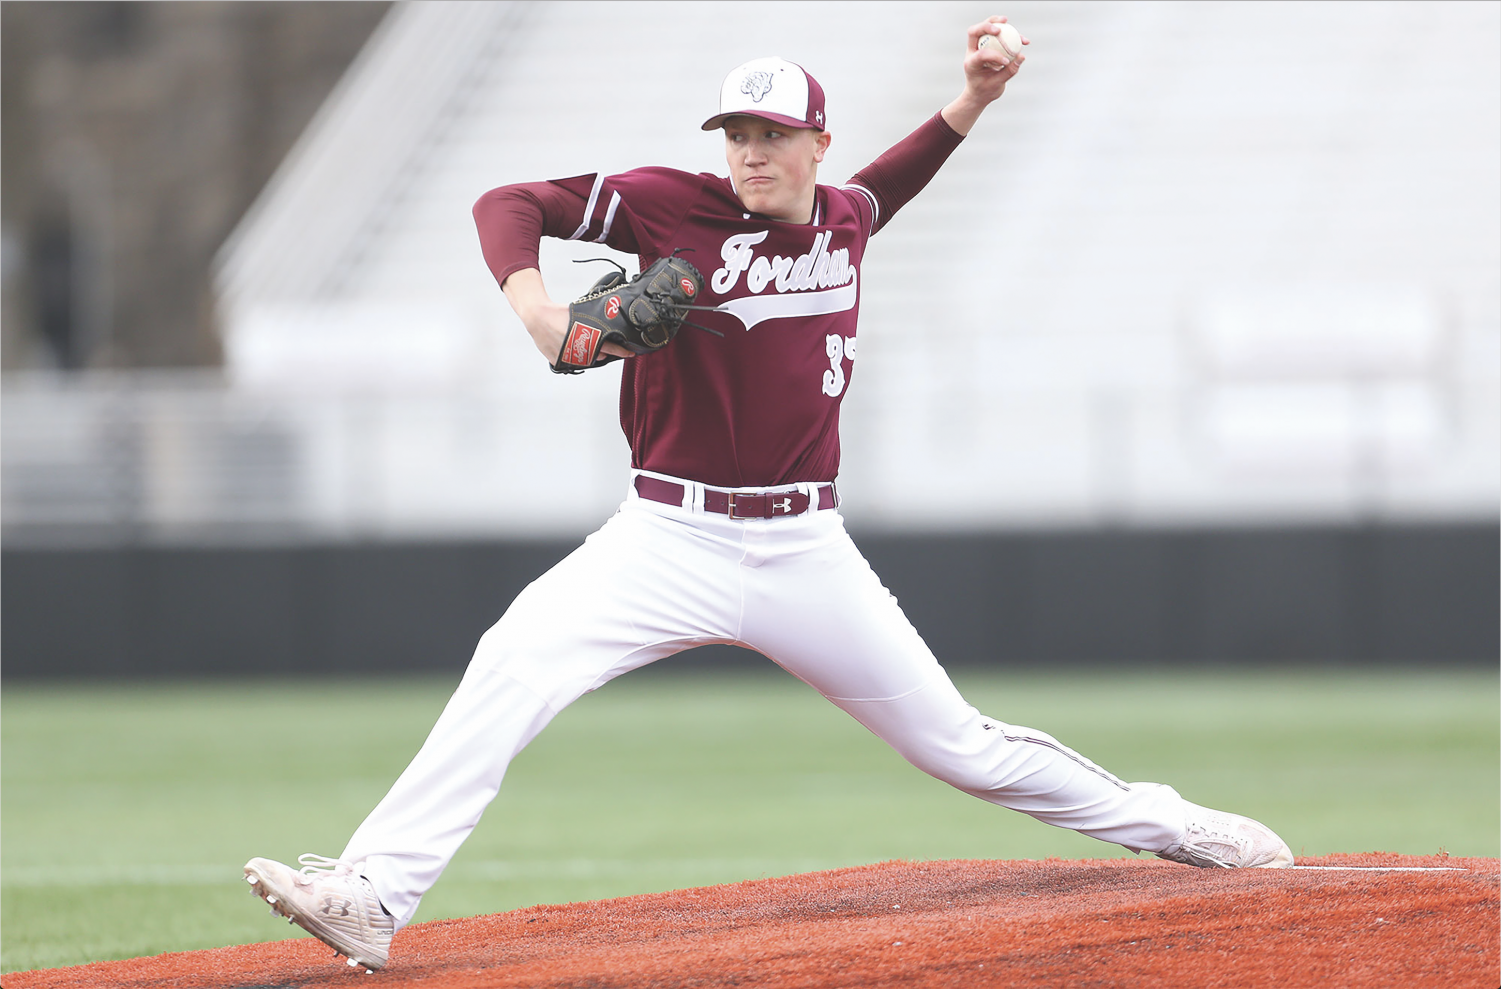 Photo courtesy of Fordham Sports  Info Matt Mikulski, FCRH '21, is all business as he throws his circle change against St. Bonaventure.